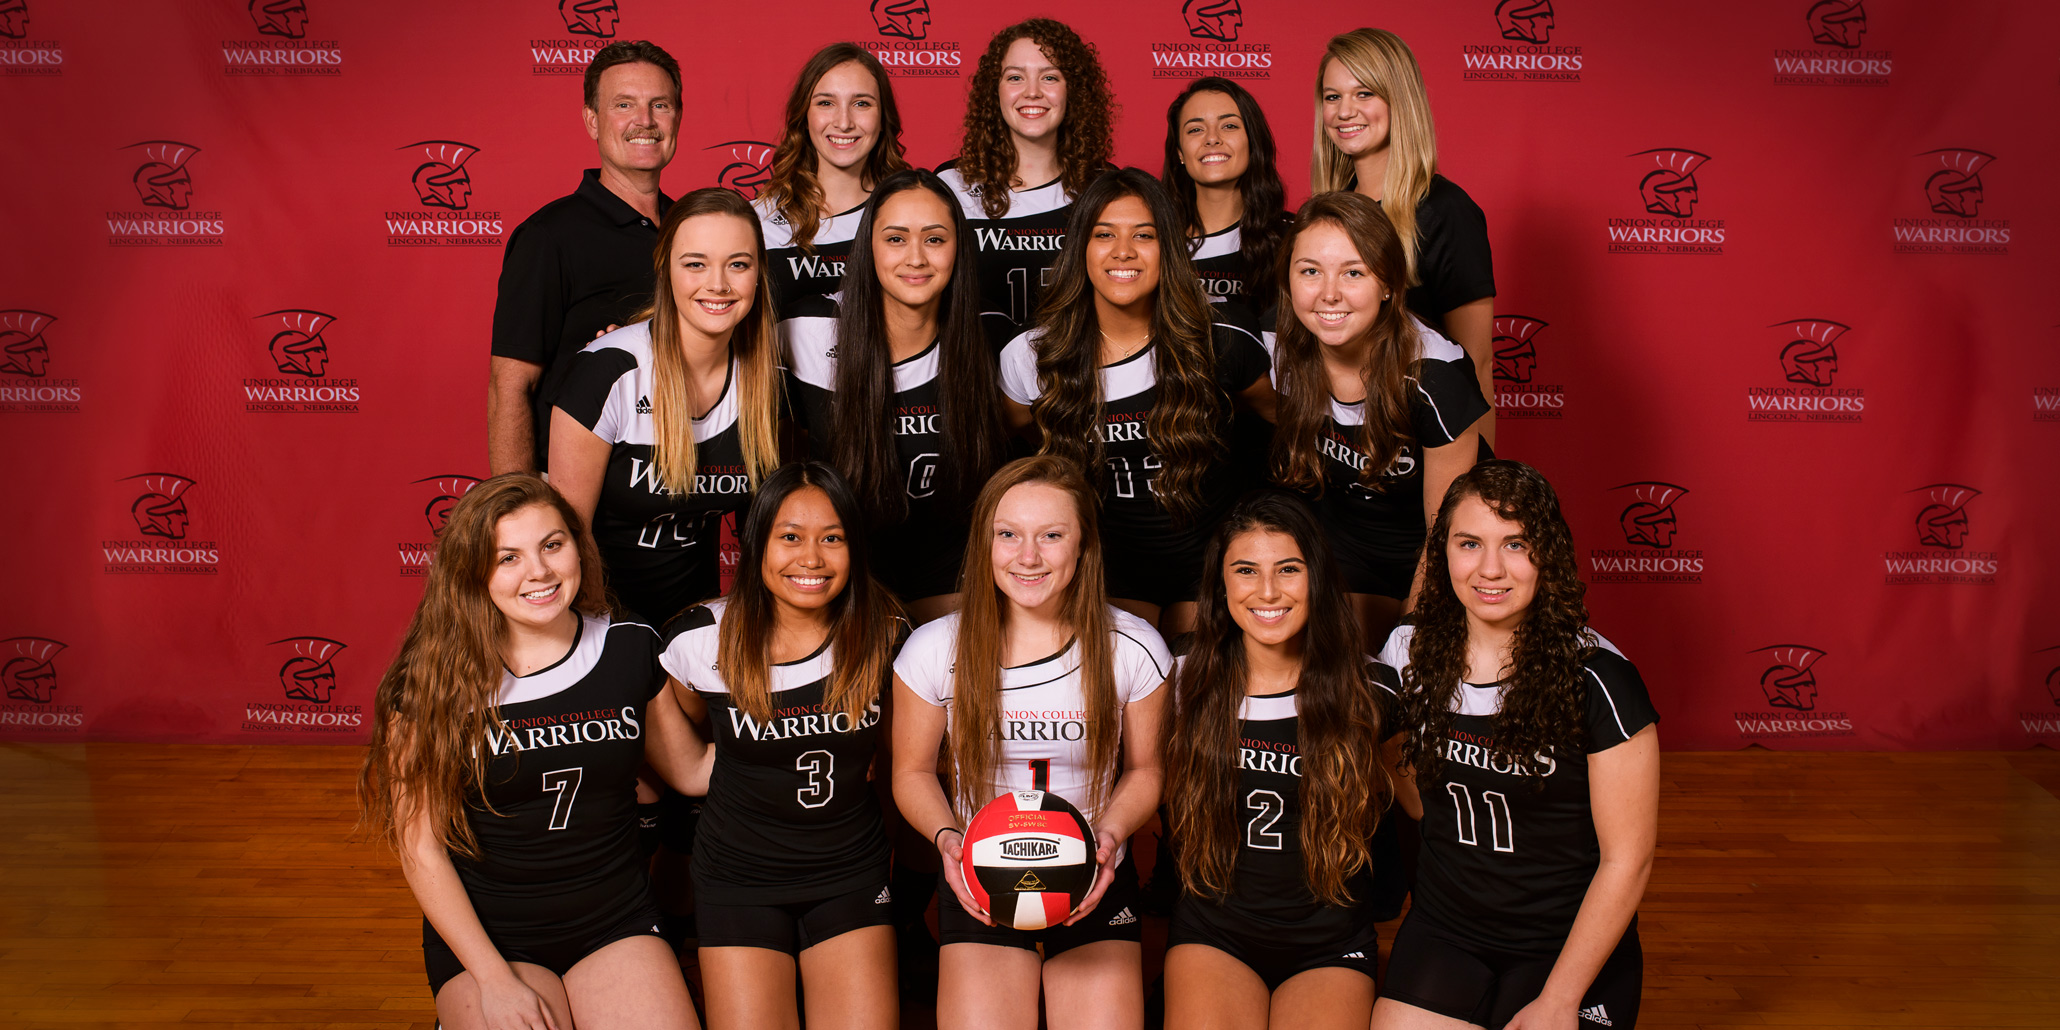 Photo of the women's volleyball team.